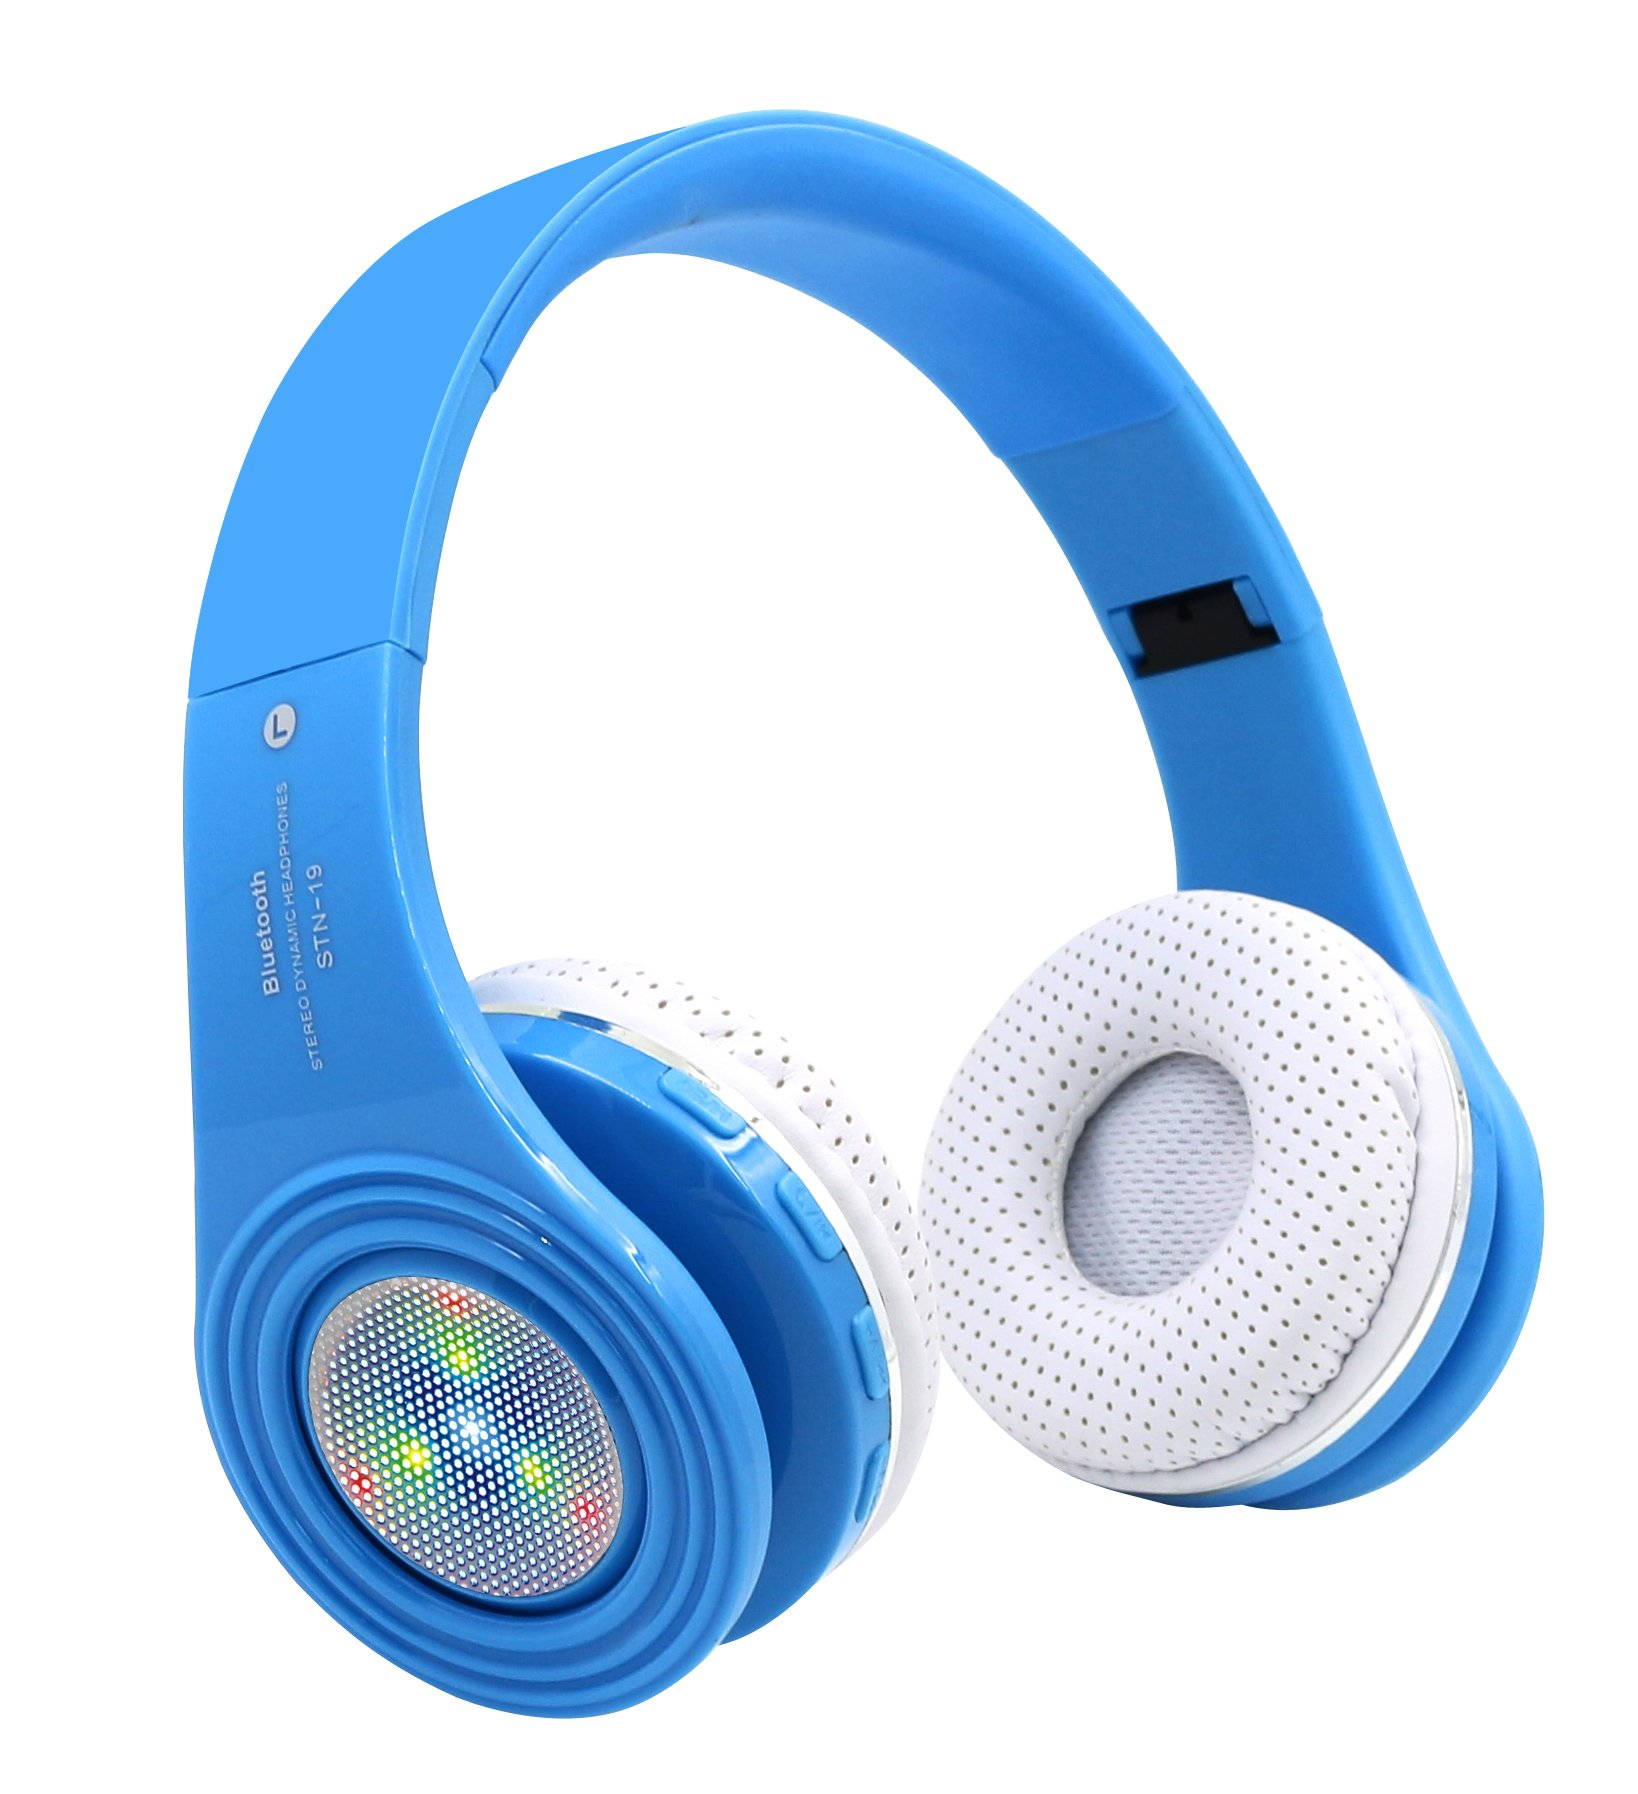 Kids Bluetooth Headphones Wireless, Children Over Ear Headset with Mic,Noise Cancelling Reduction, Foldable Ajustable Lightweight,for Cellphone Tablets PC iPad for Boy Girl-Blue